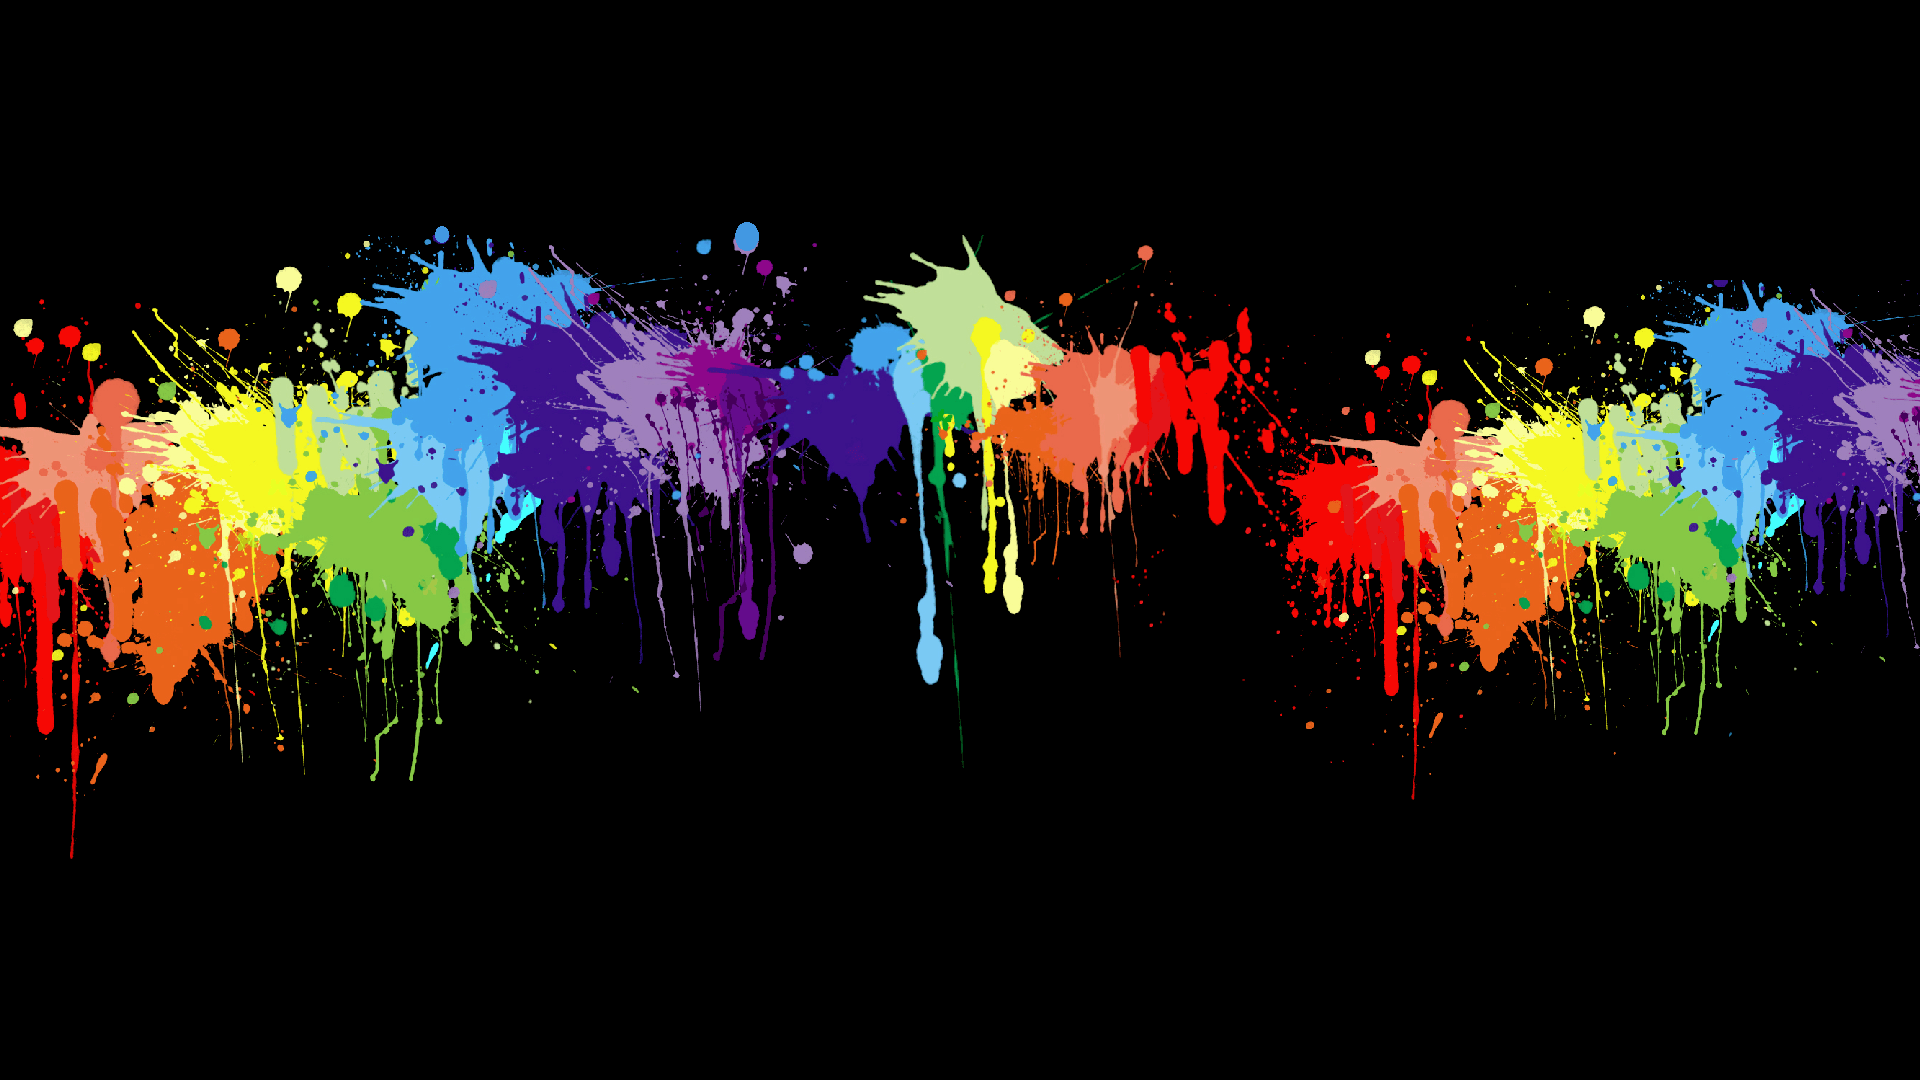 paint drop wallpaper - photo #36